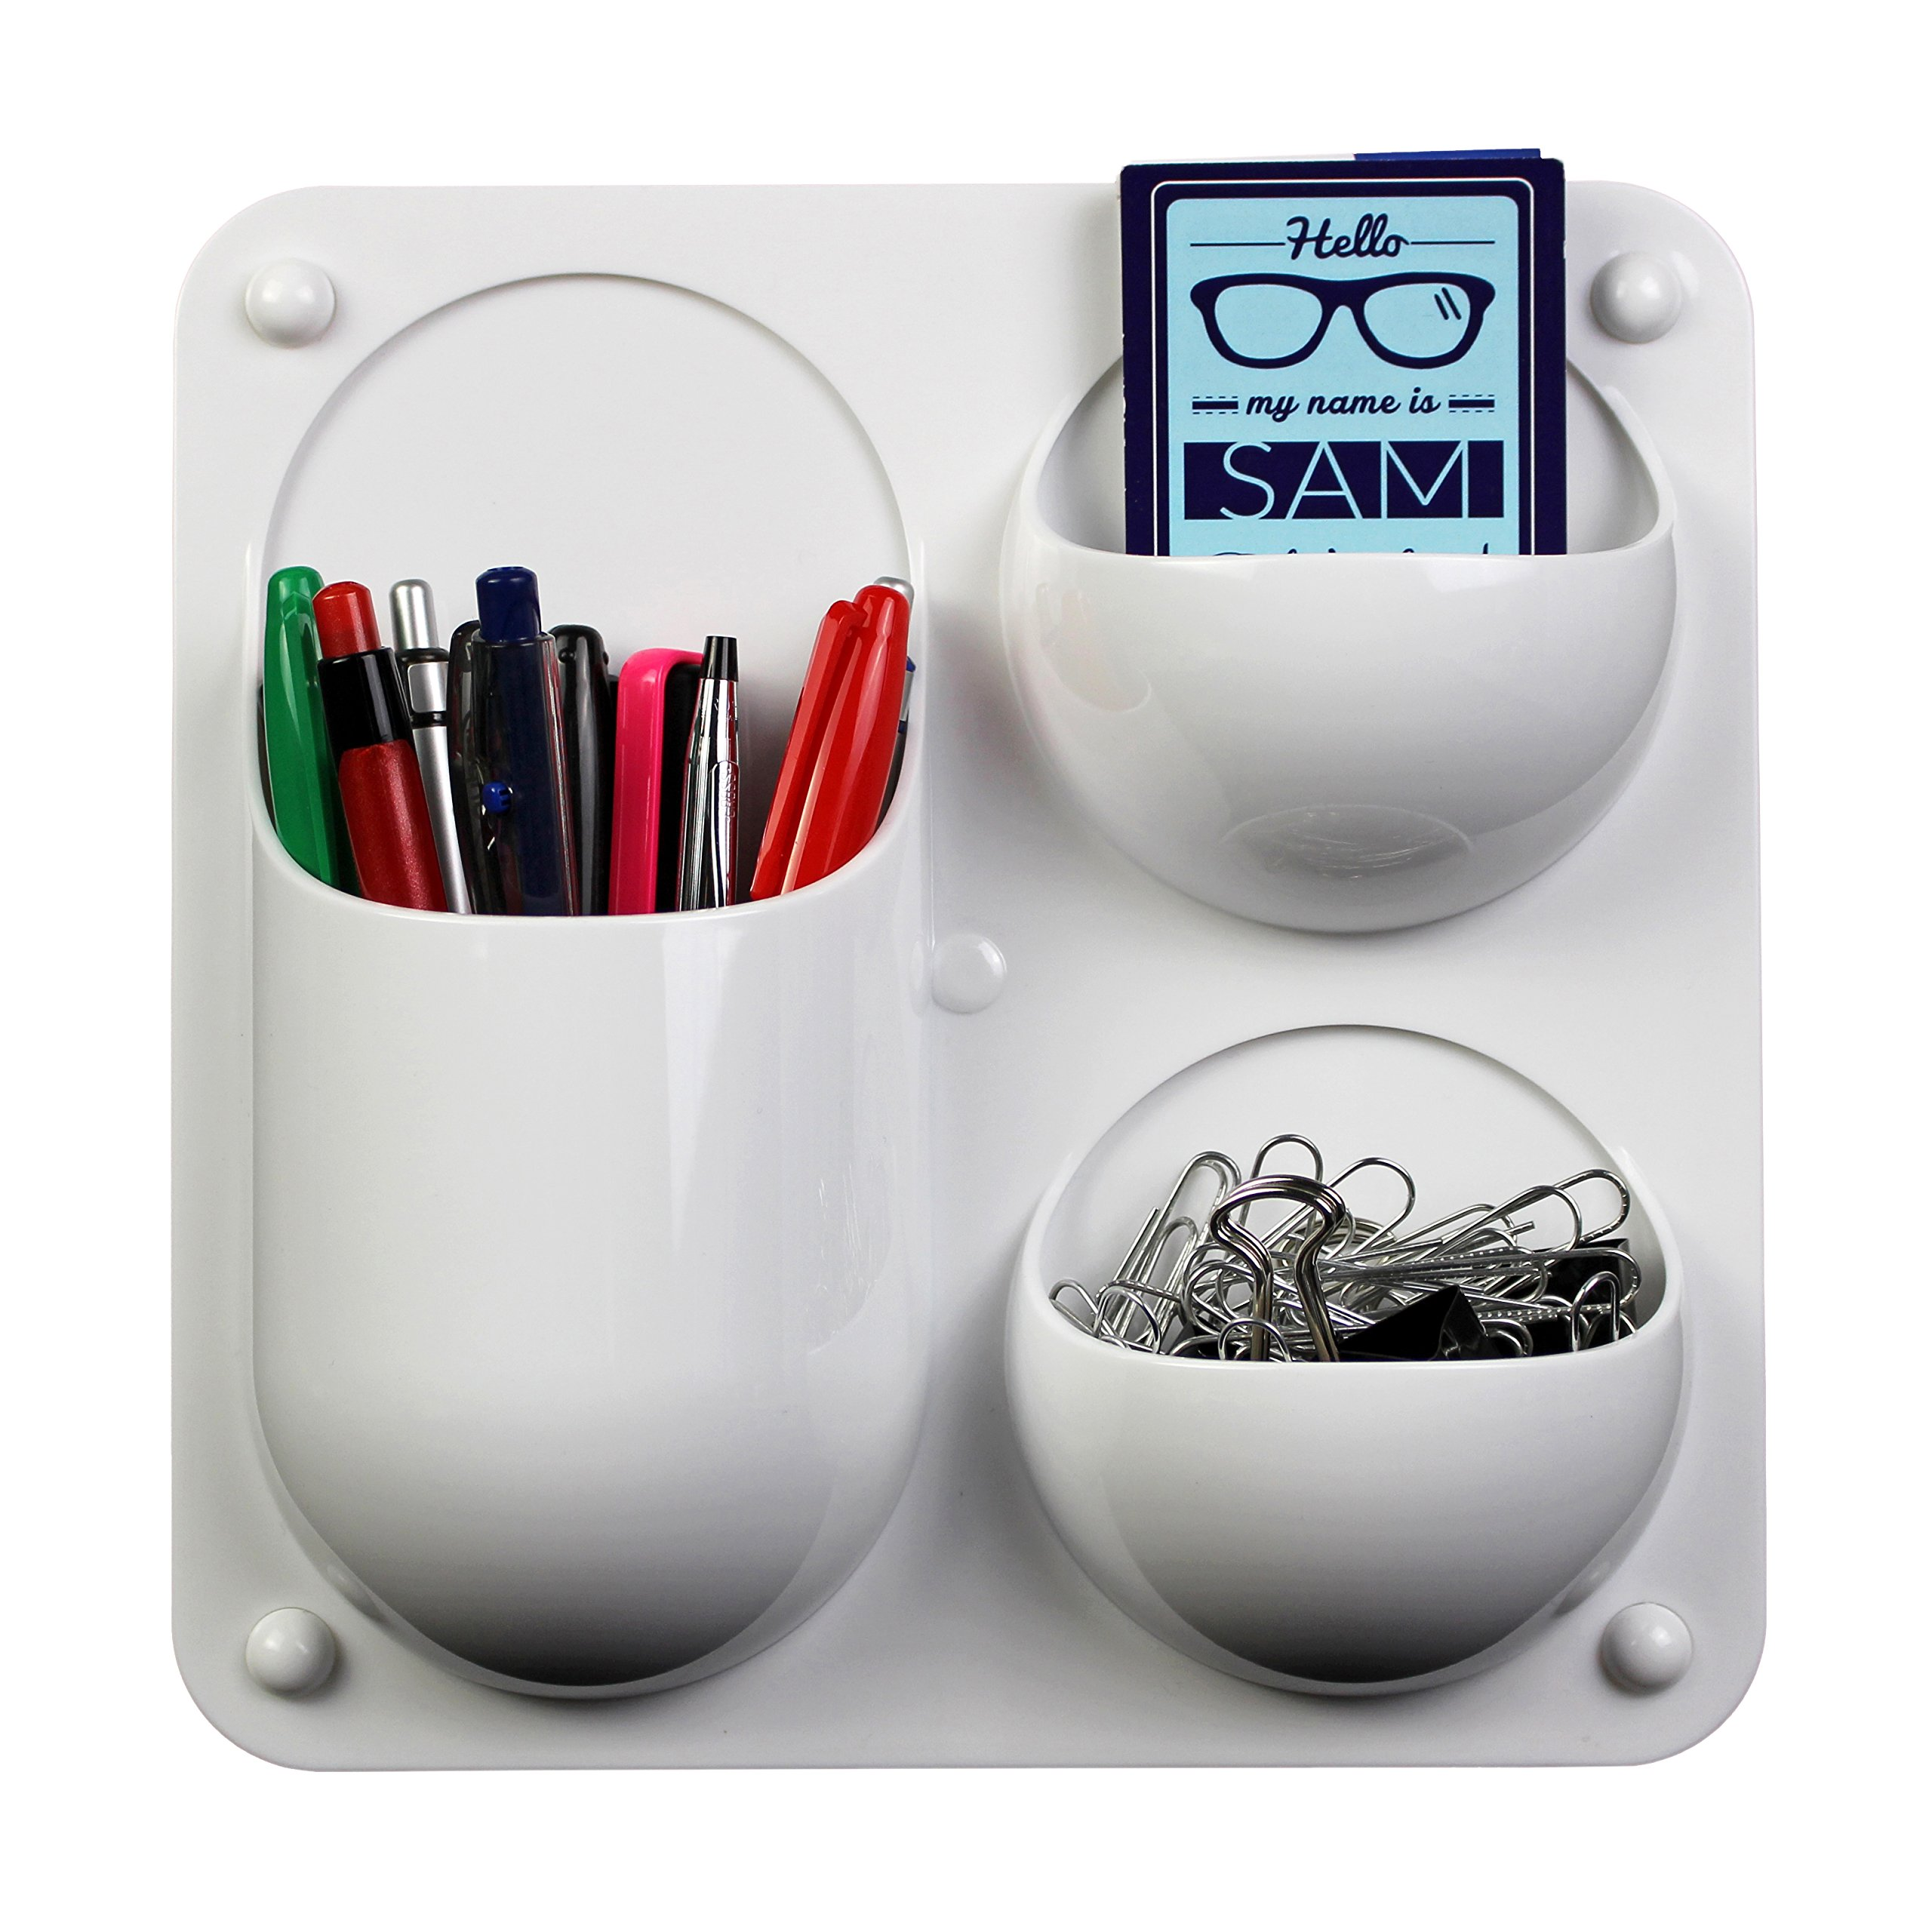 Wall-Mounted Organizer Caddy with 3 Sections for Storing Pens, Pencils, Sticky Notes and Other Supplies for Offices, Homes, Classrooms and Dorms - White